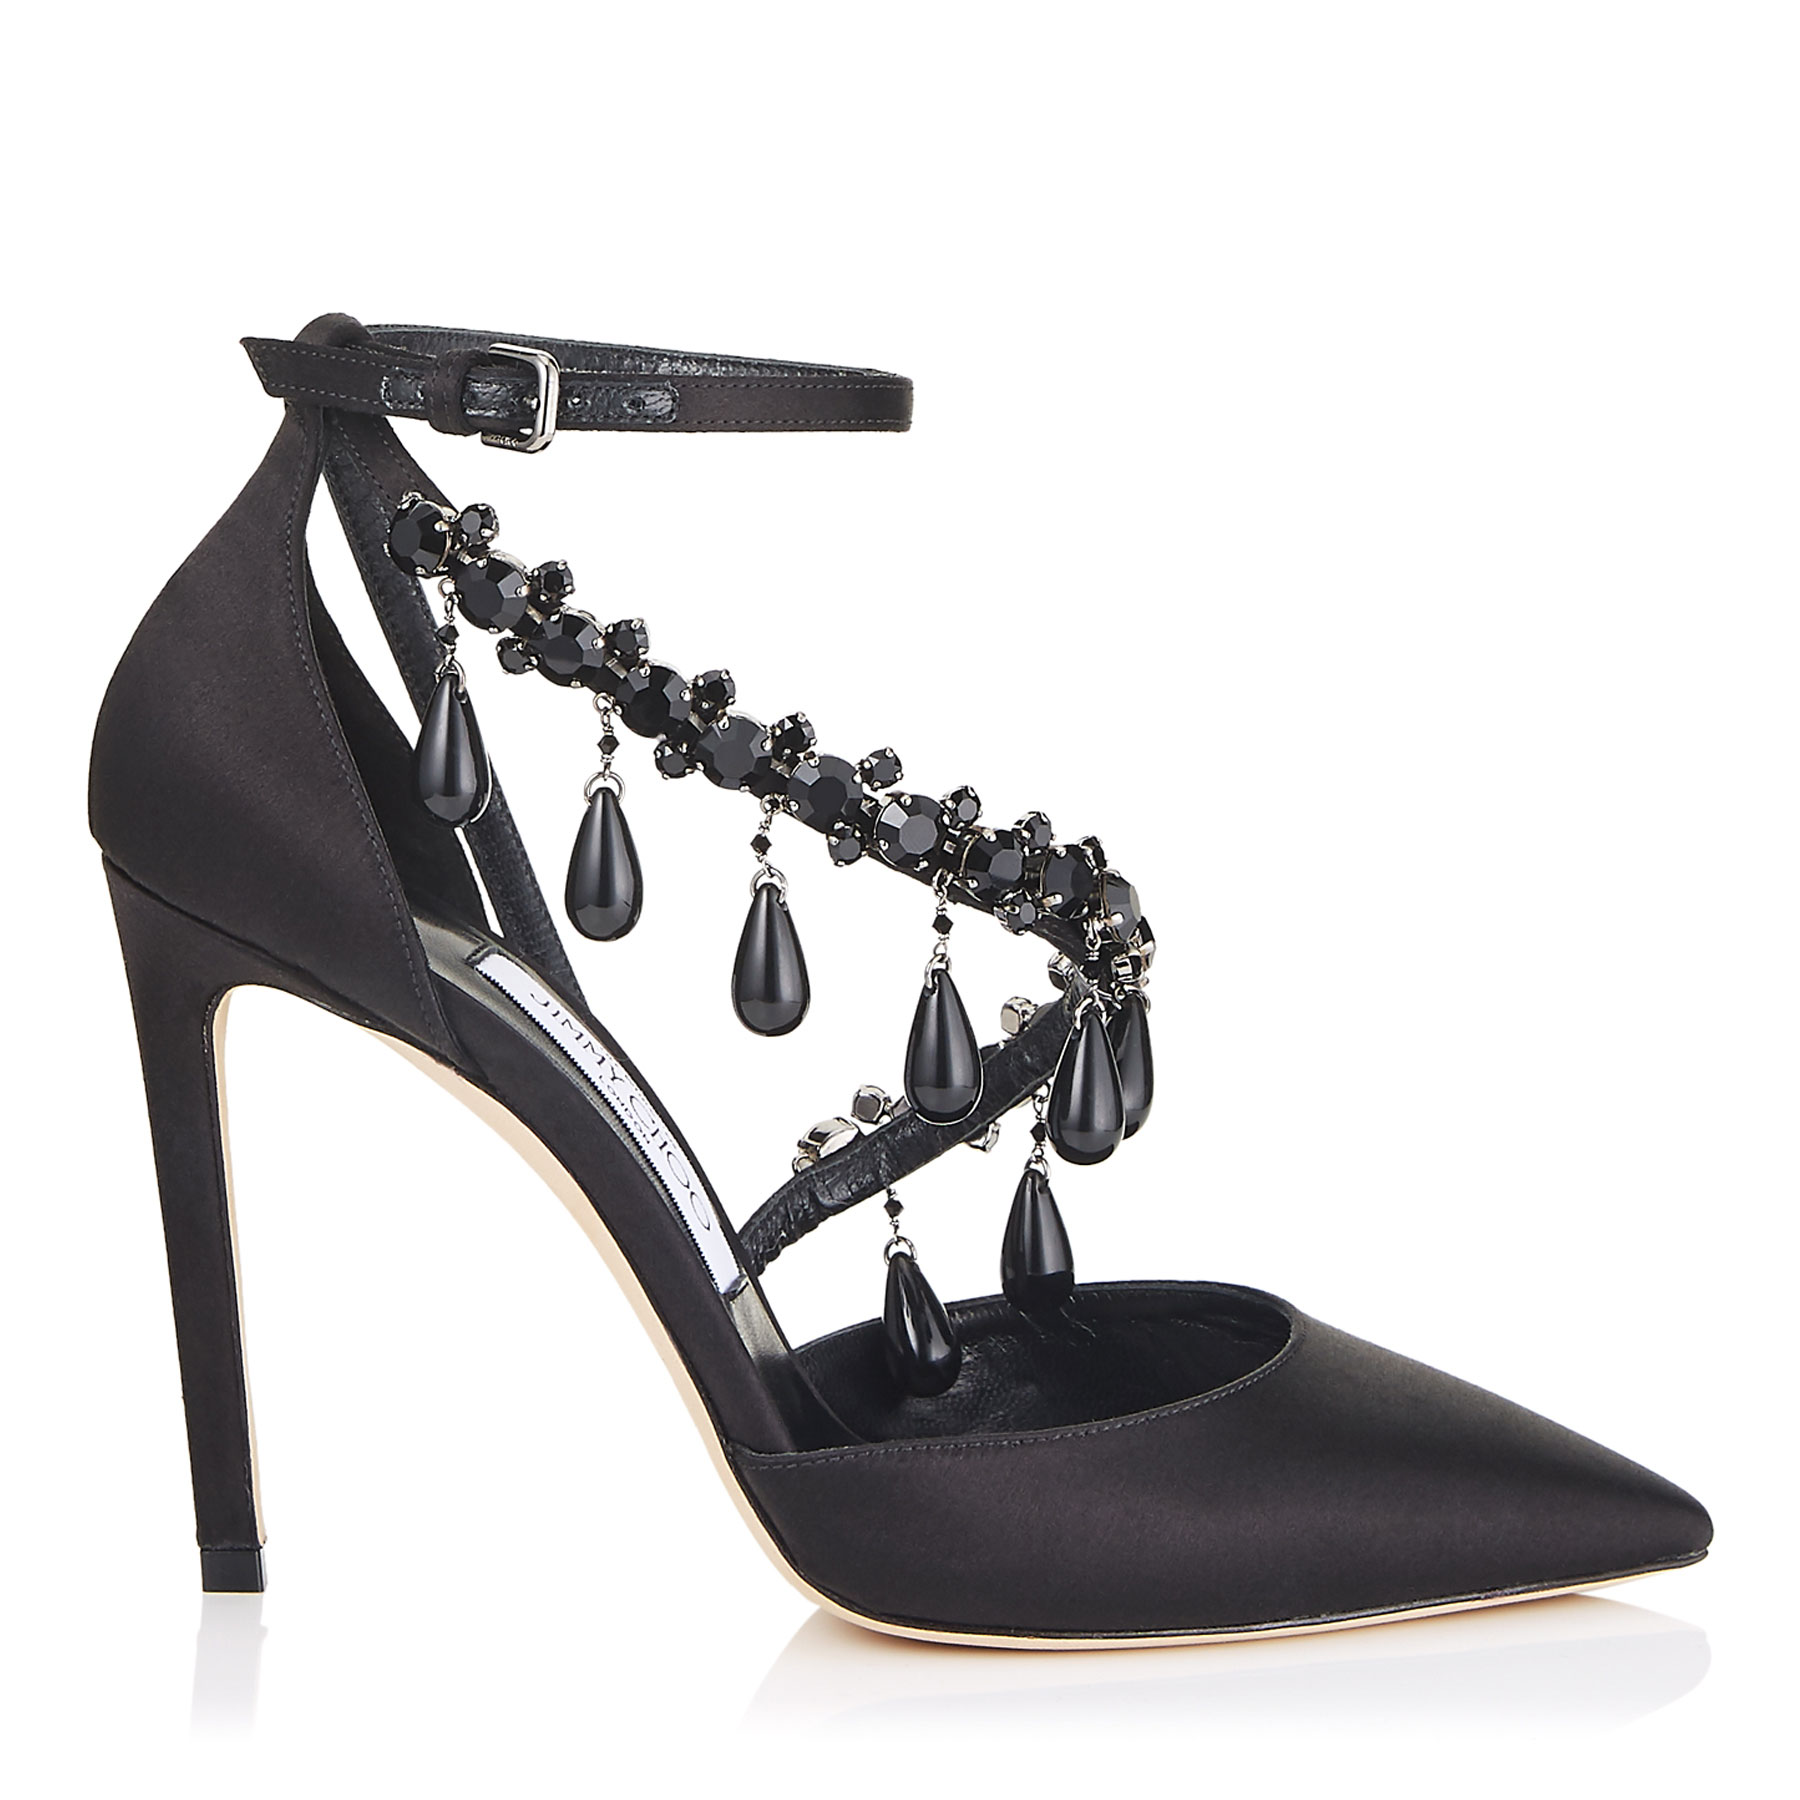 VICTORIA 100 Black Satin Pointy Toe Pumps with Jet Black Swarovski Crystals by Jimmy Choo